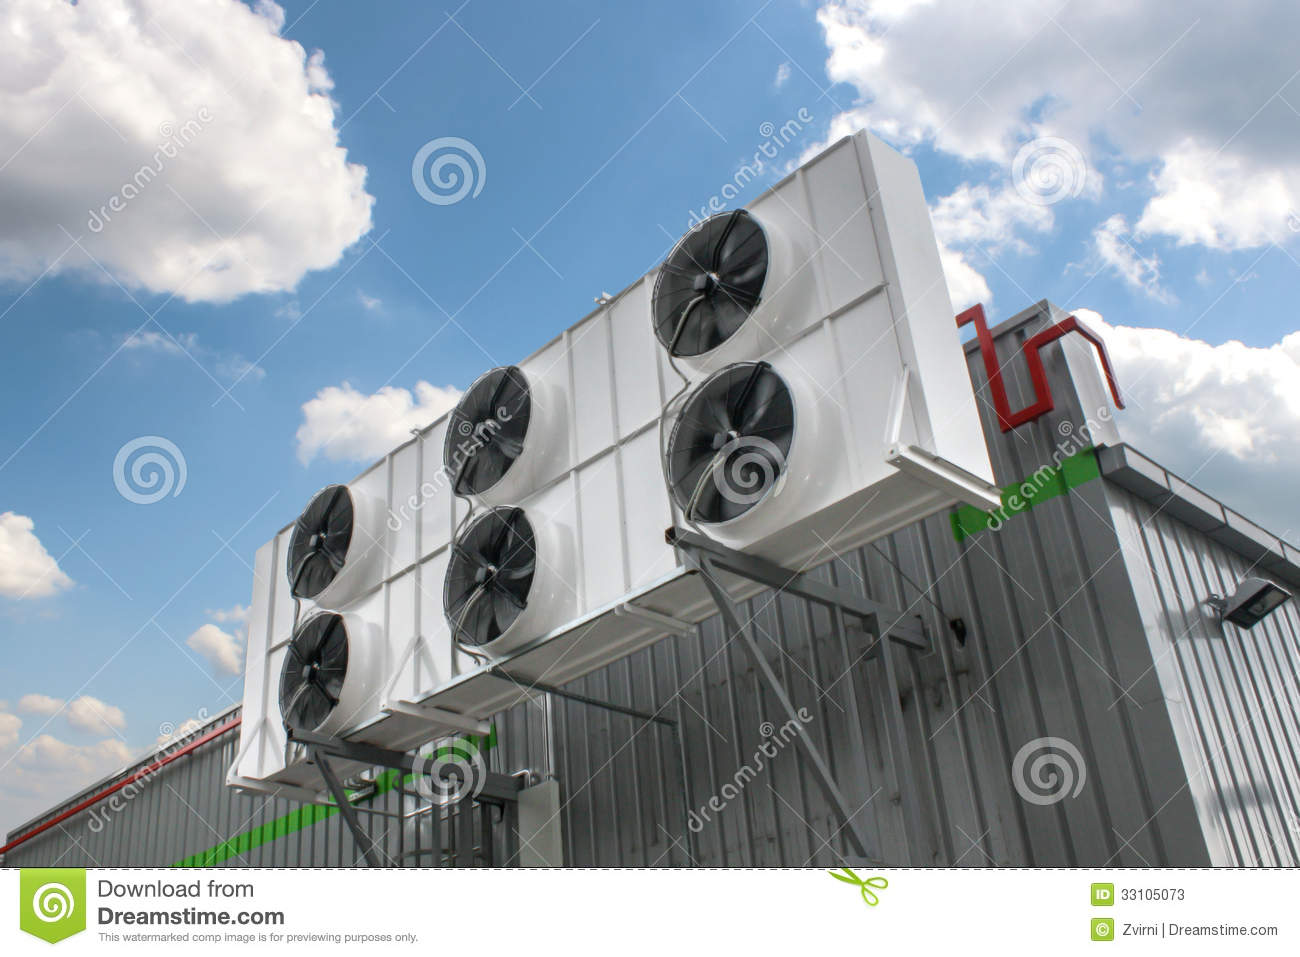 Air conditioning system assembled on side of a building. #6D312F